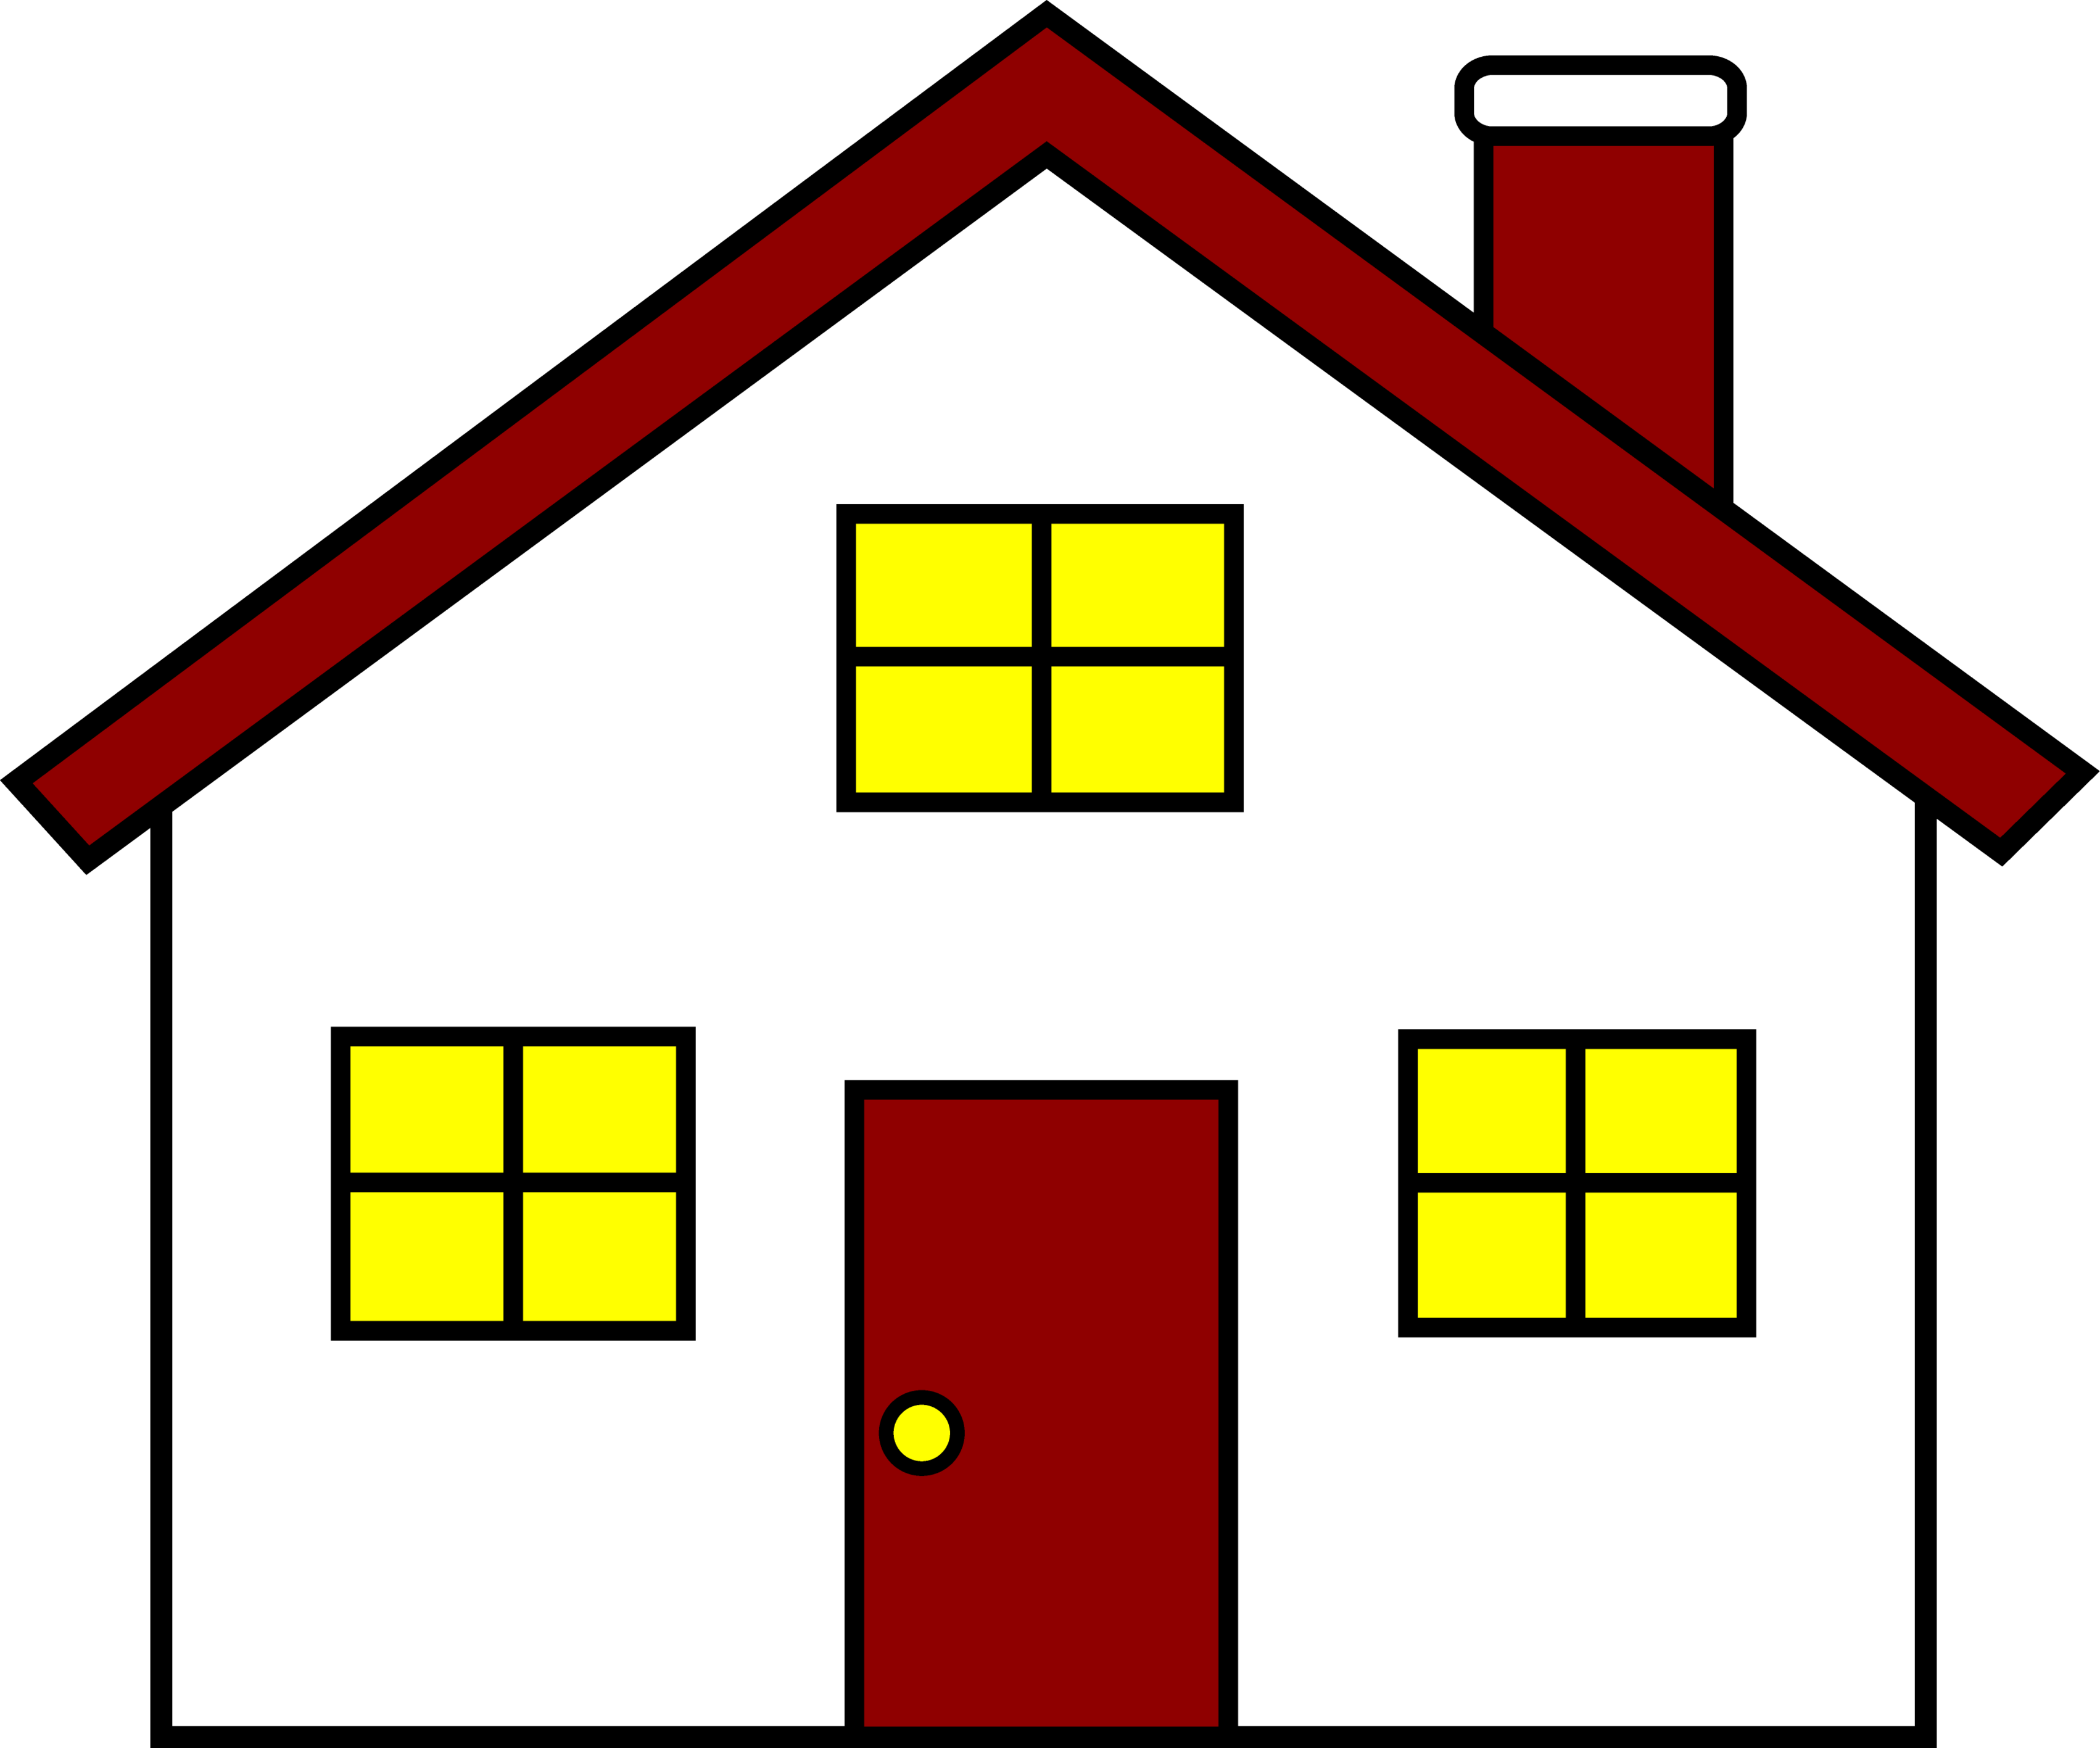 Side view of a house clipart banner black and white library 28+ Collection of Side View Of House Clipart | High quality, free ... banner black and white library